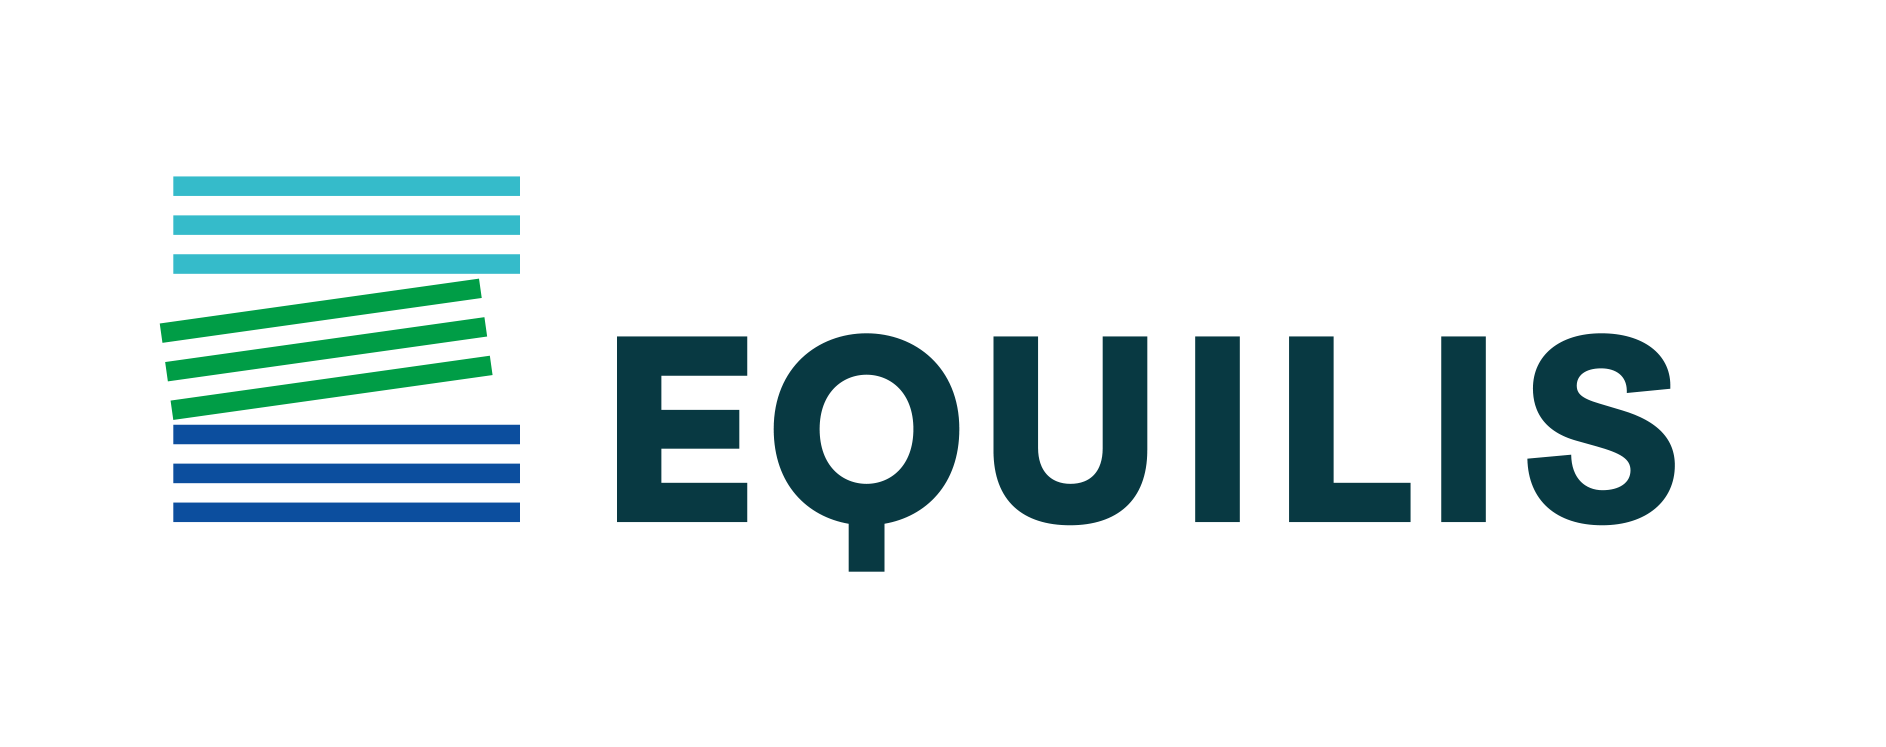 Logo of Equilis